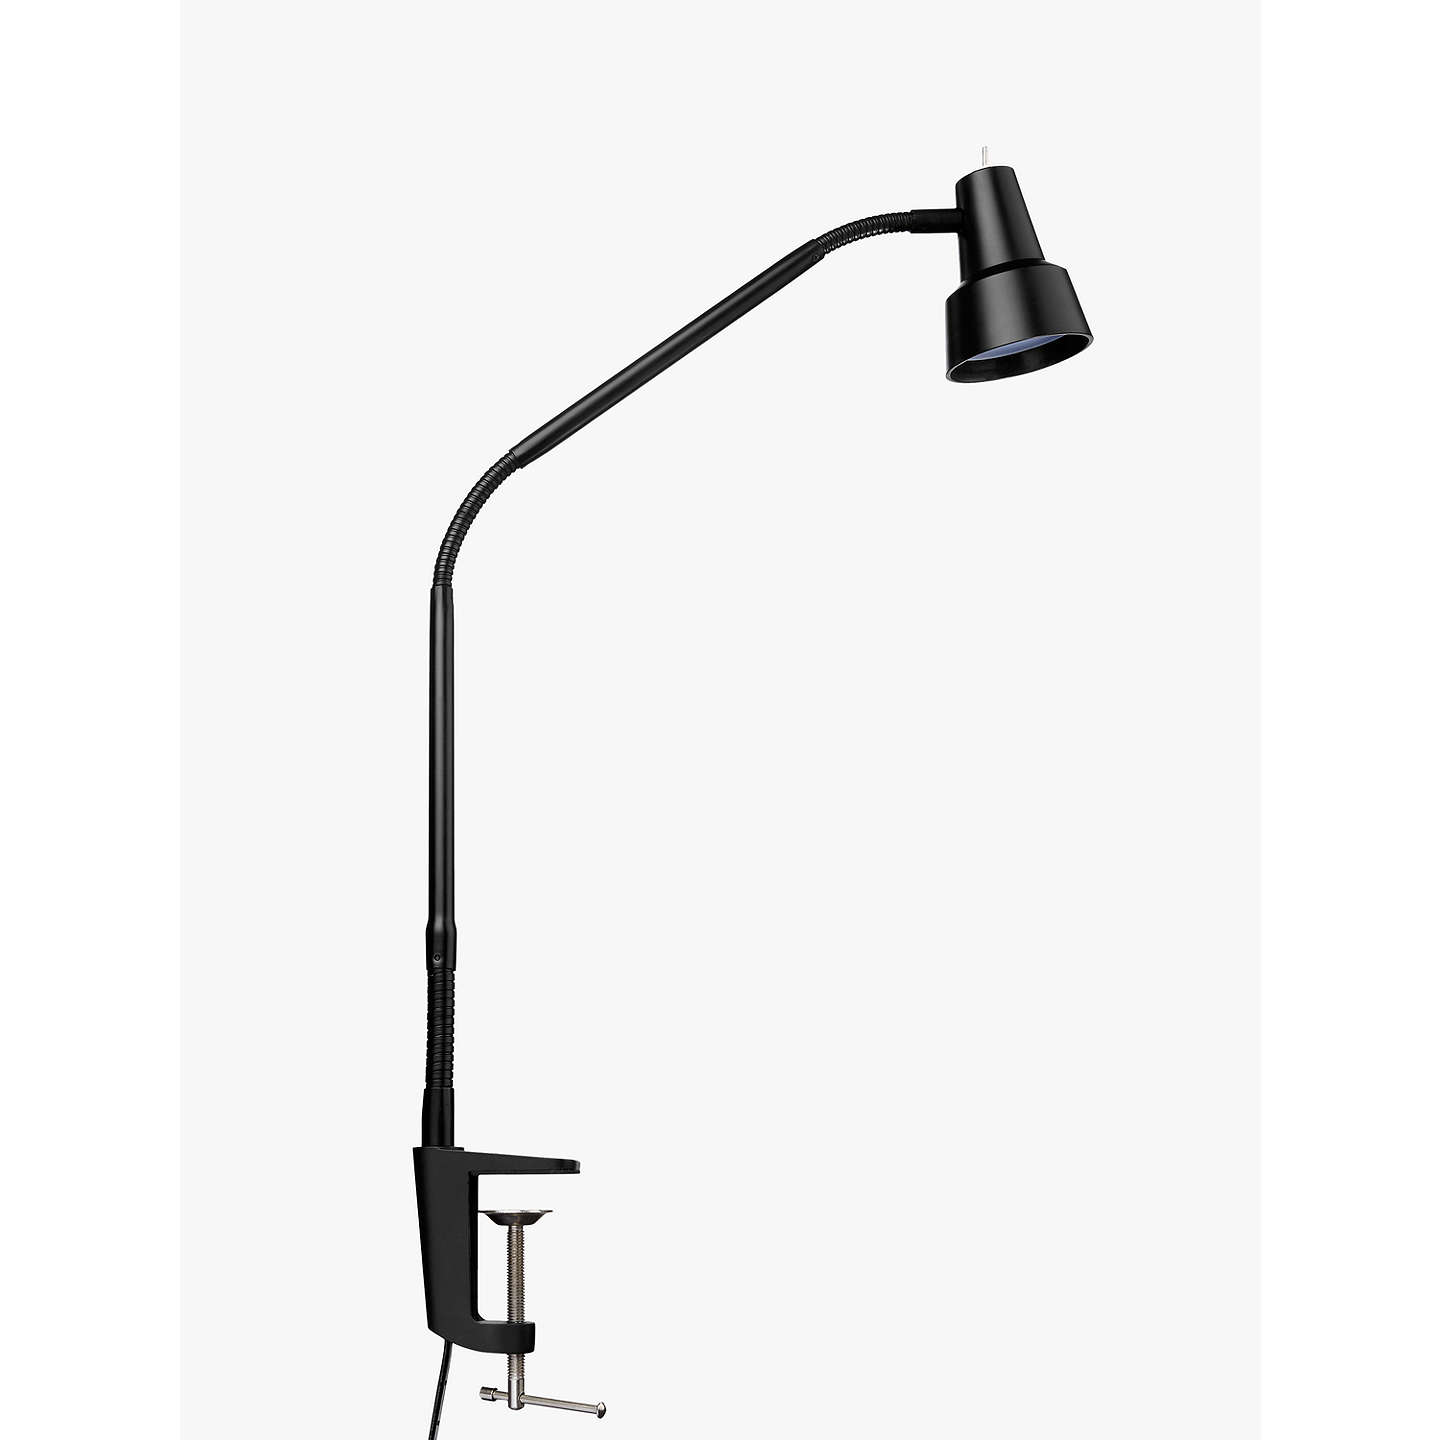 BuyJohn Lewis Zadie LED Clip on Desk Lamp with Clamp, Black Online at johnlewis.com